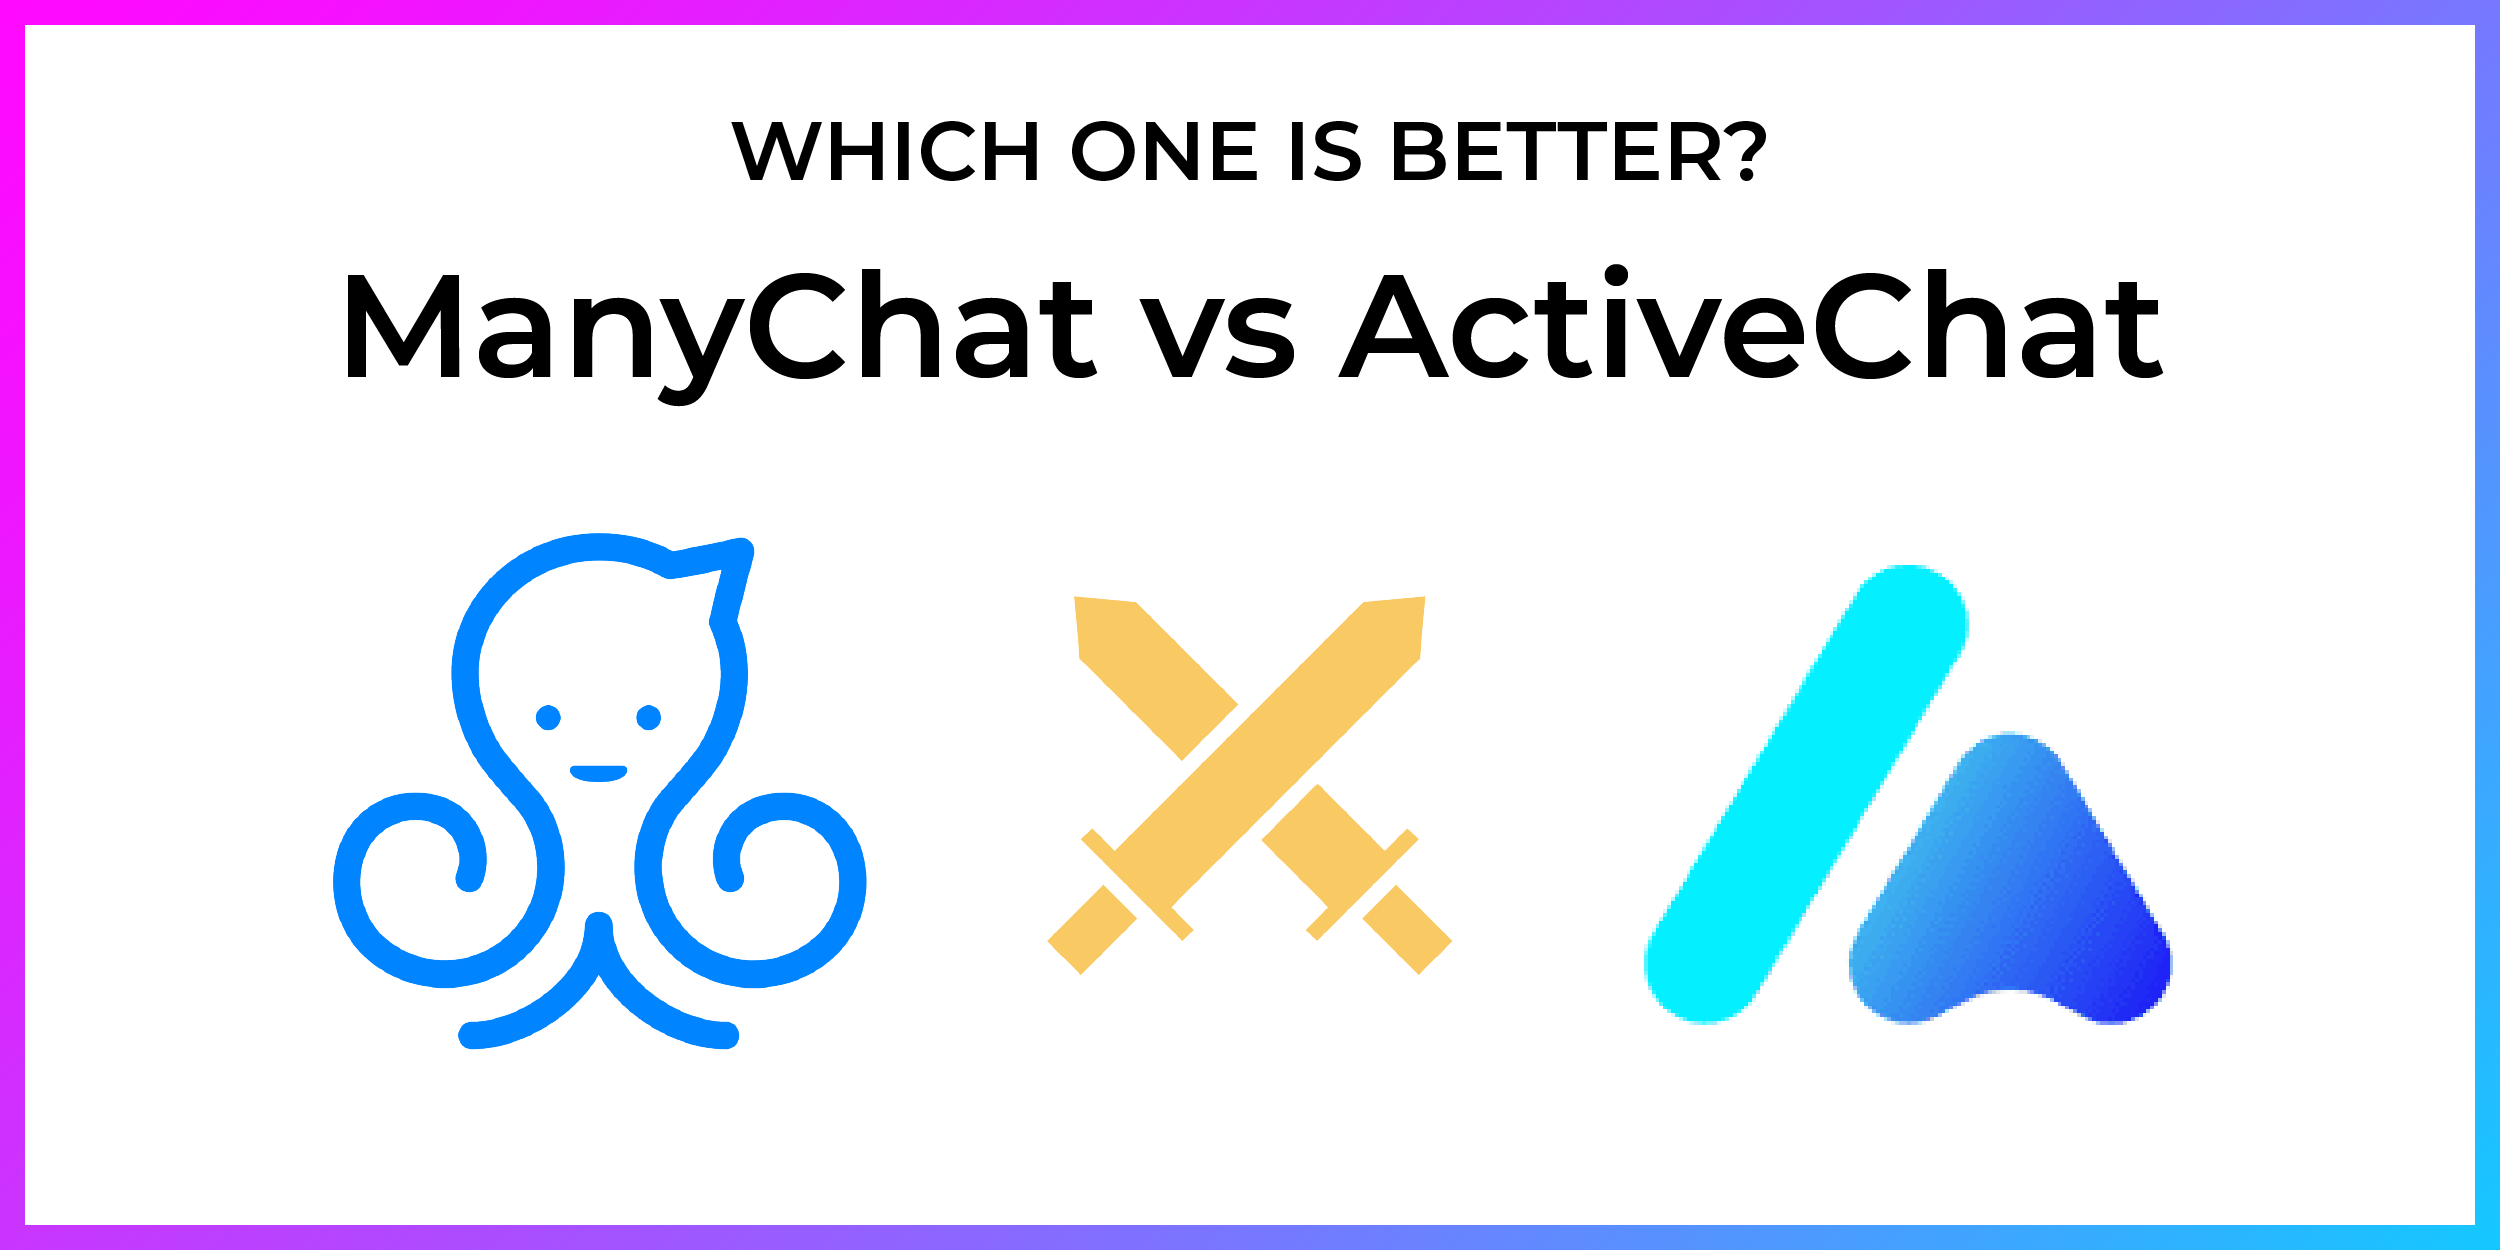 manychat-vs-activechat